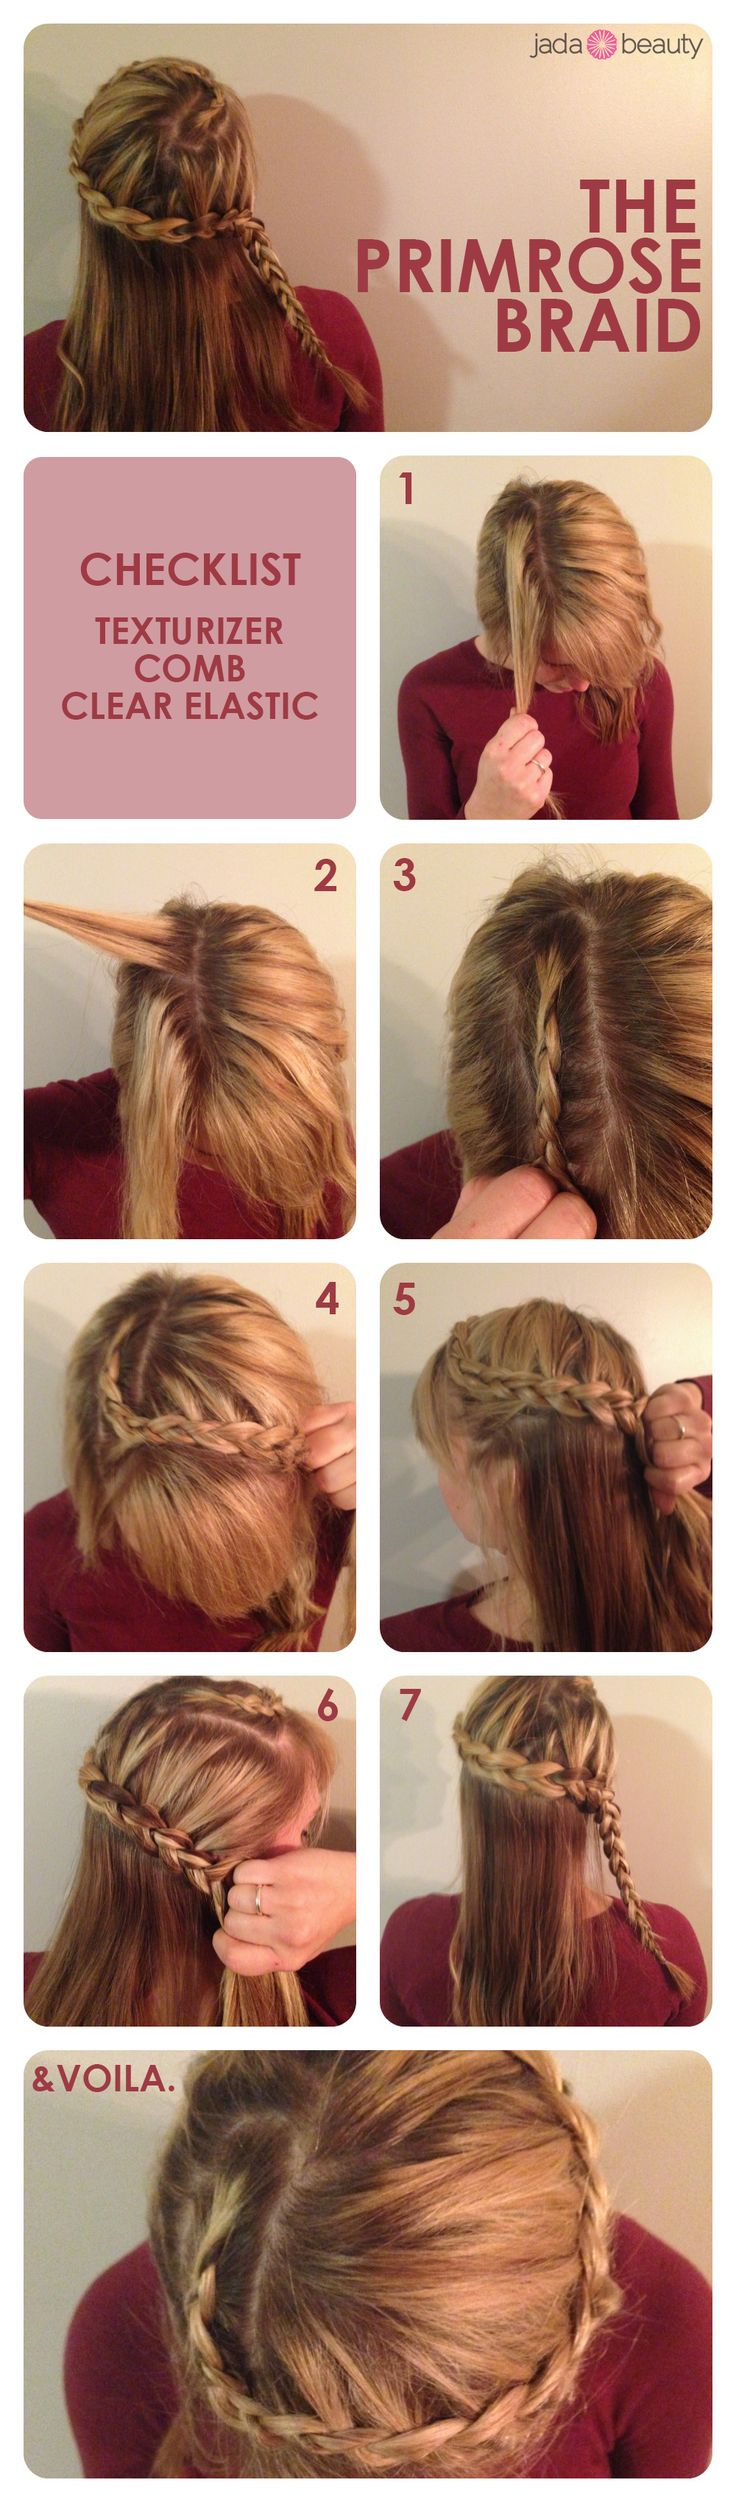 Hairstyles Games Fair Primrose Everdeen Braids  Hunger Games  Cute Girls Hairstyles